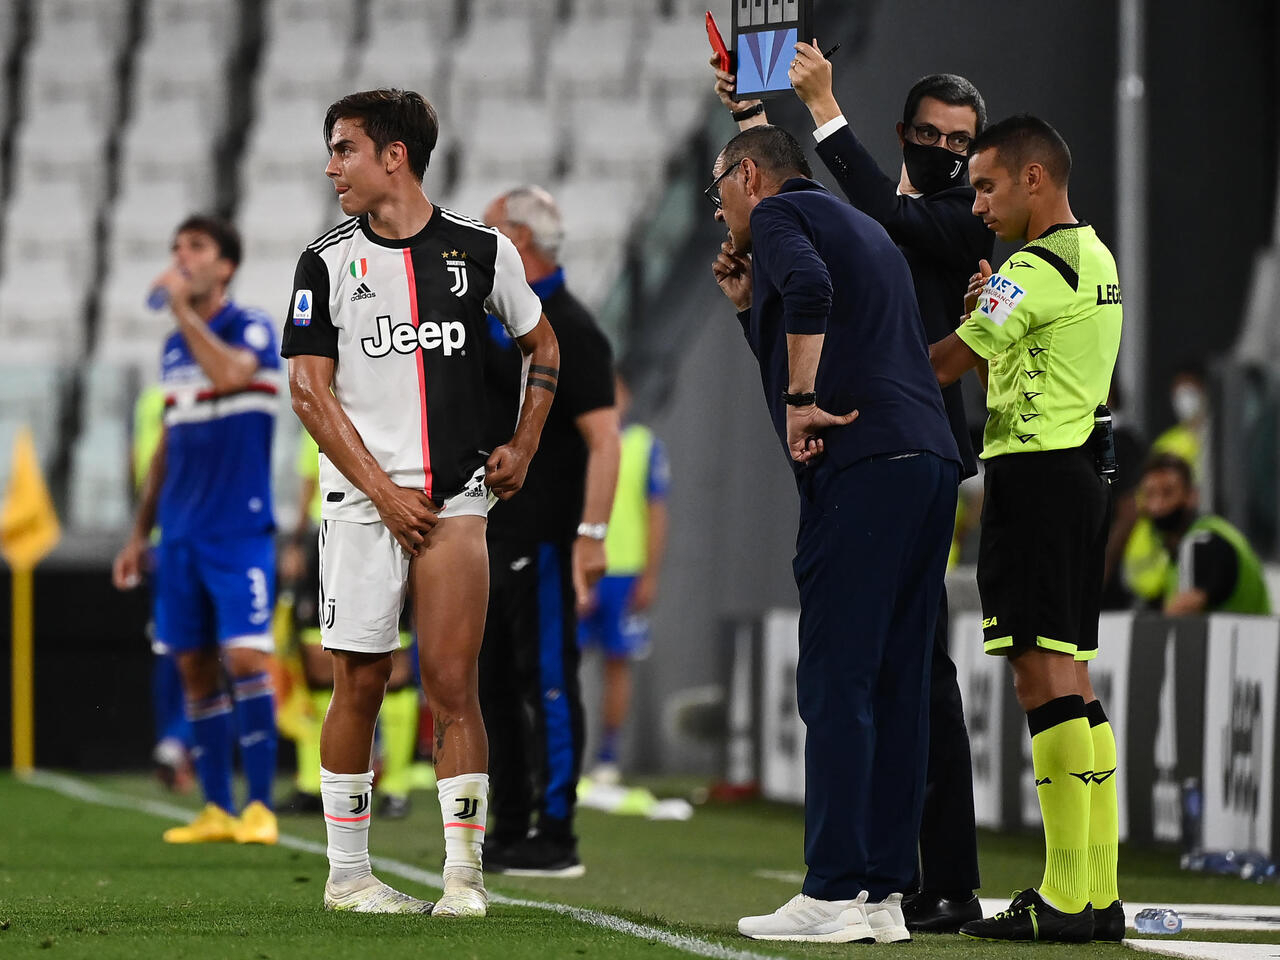 Juve could lose Dybala for Champions League with thigh injury ...